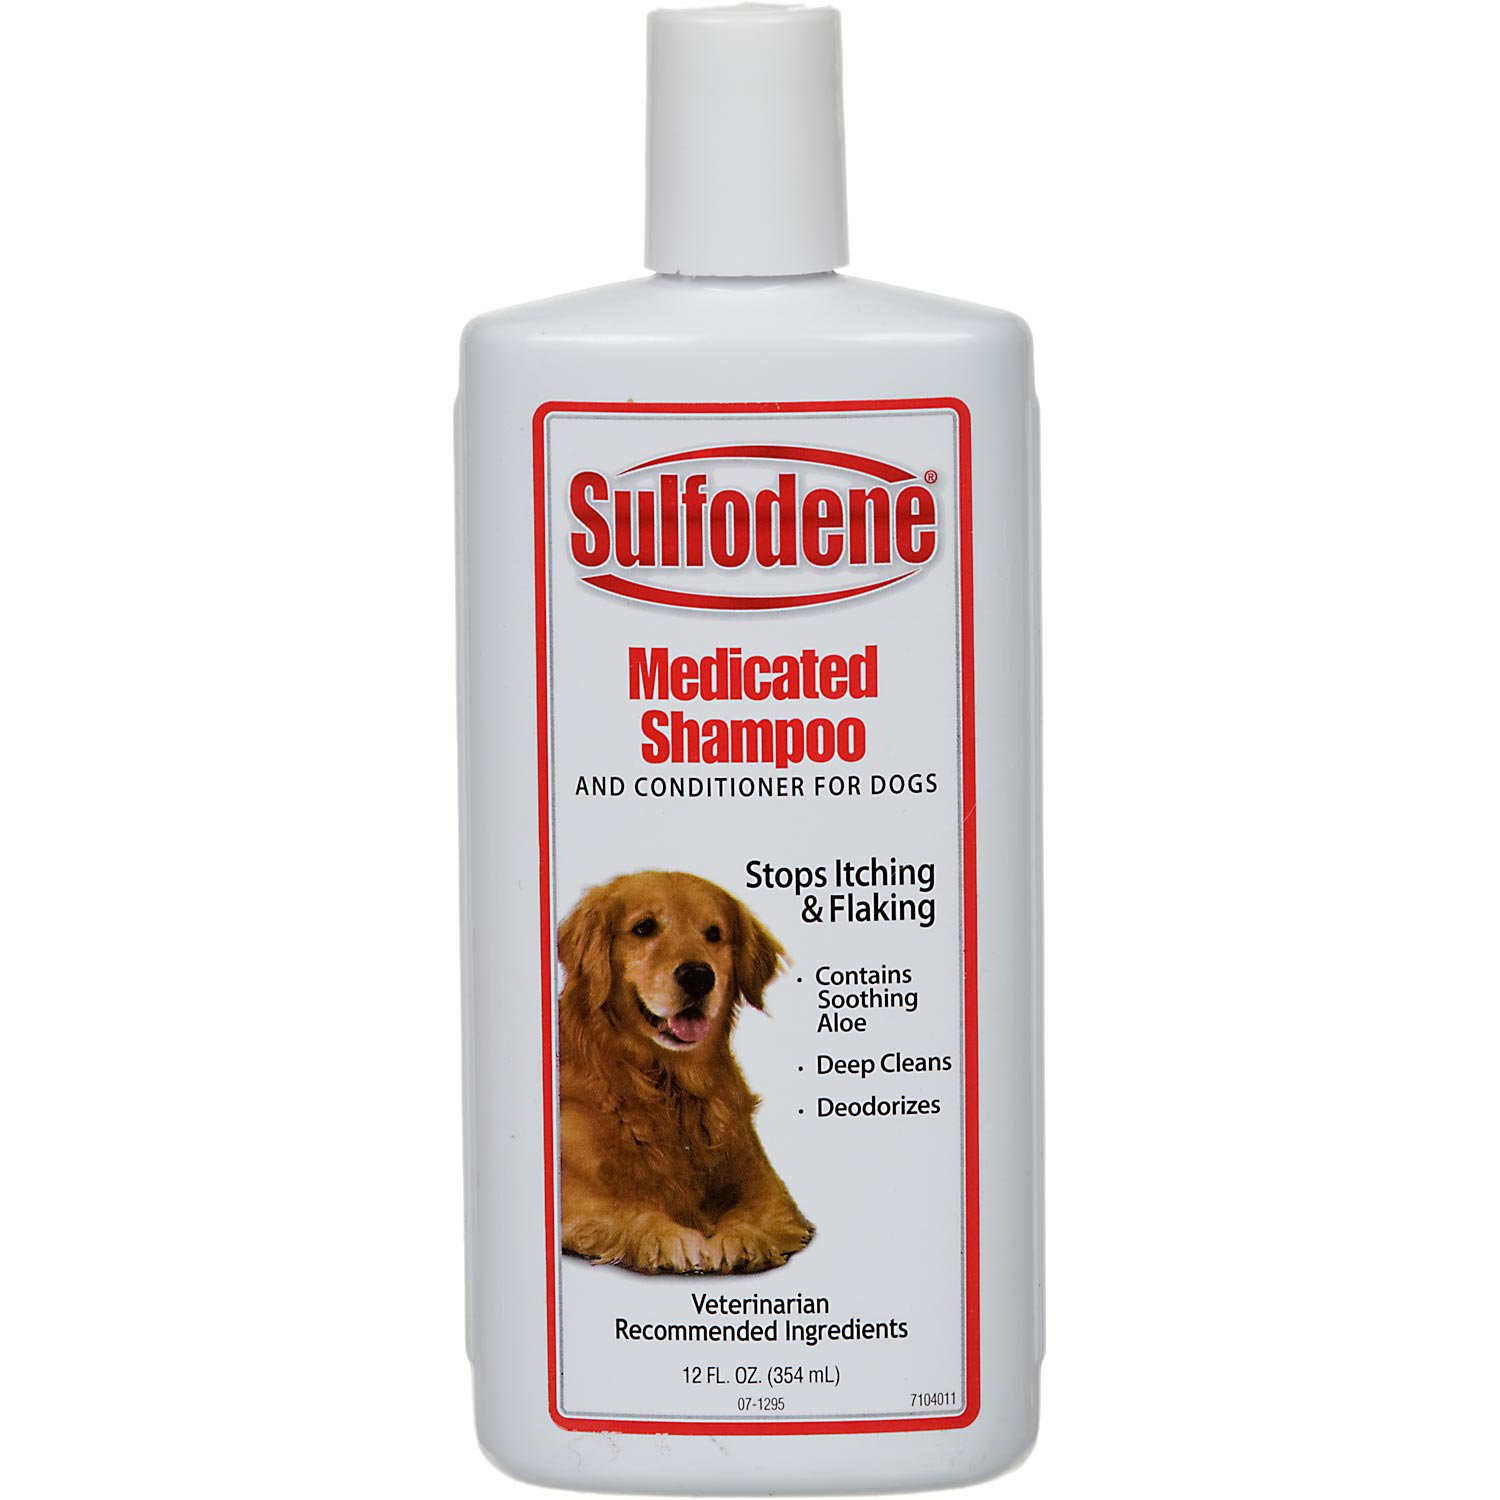 Apr 17,  · We say on our labels NOT for use on cats. There are a multitude of ingredients in dog and human shampoos that are not good for henpoi.tk use sulfate surfactants, which are bad for cats (and in my opinion, dogs and humans as well) because .